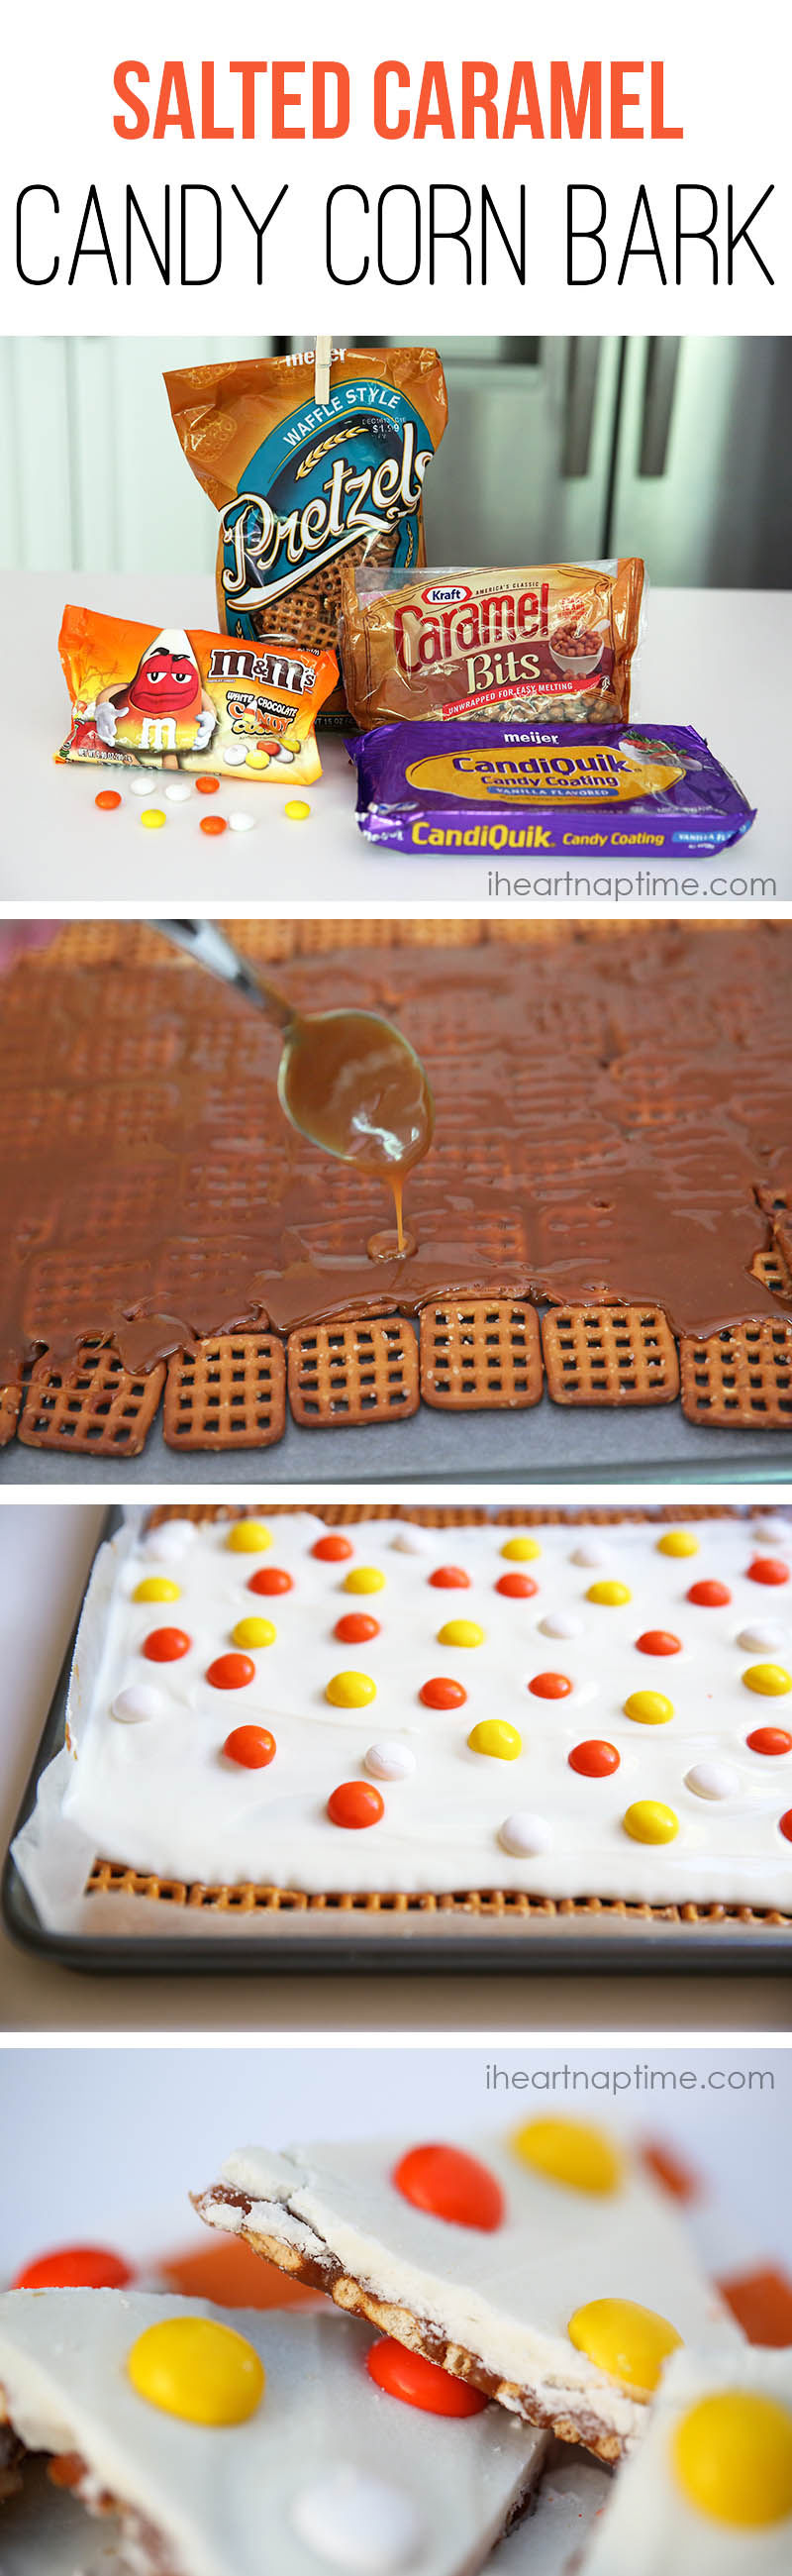 Salted Caramel Candy Corn Bark Pictures, Photos, and Images for ...